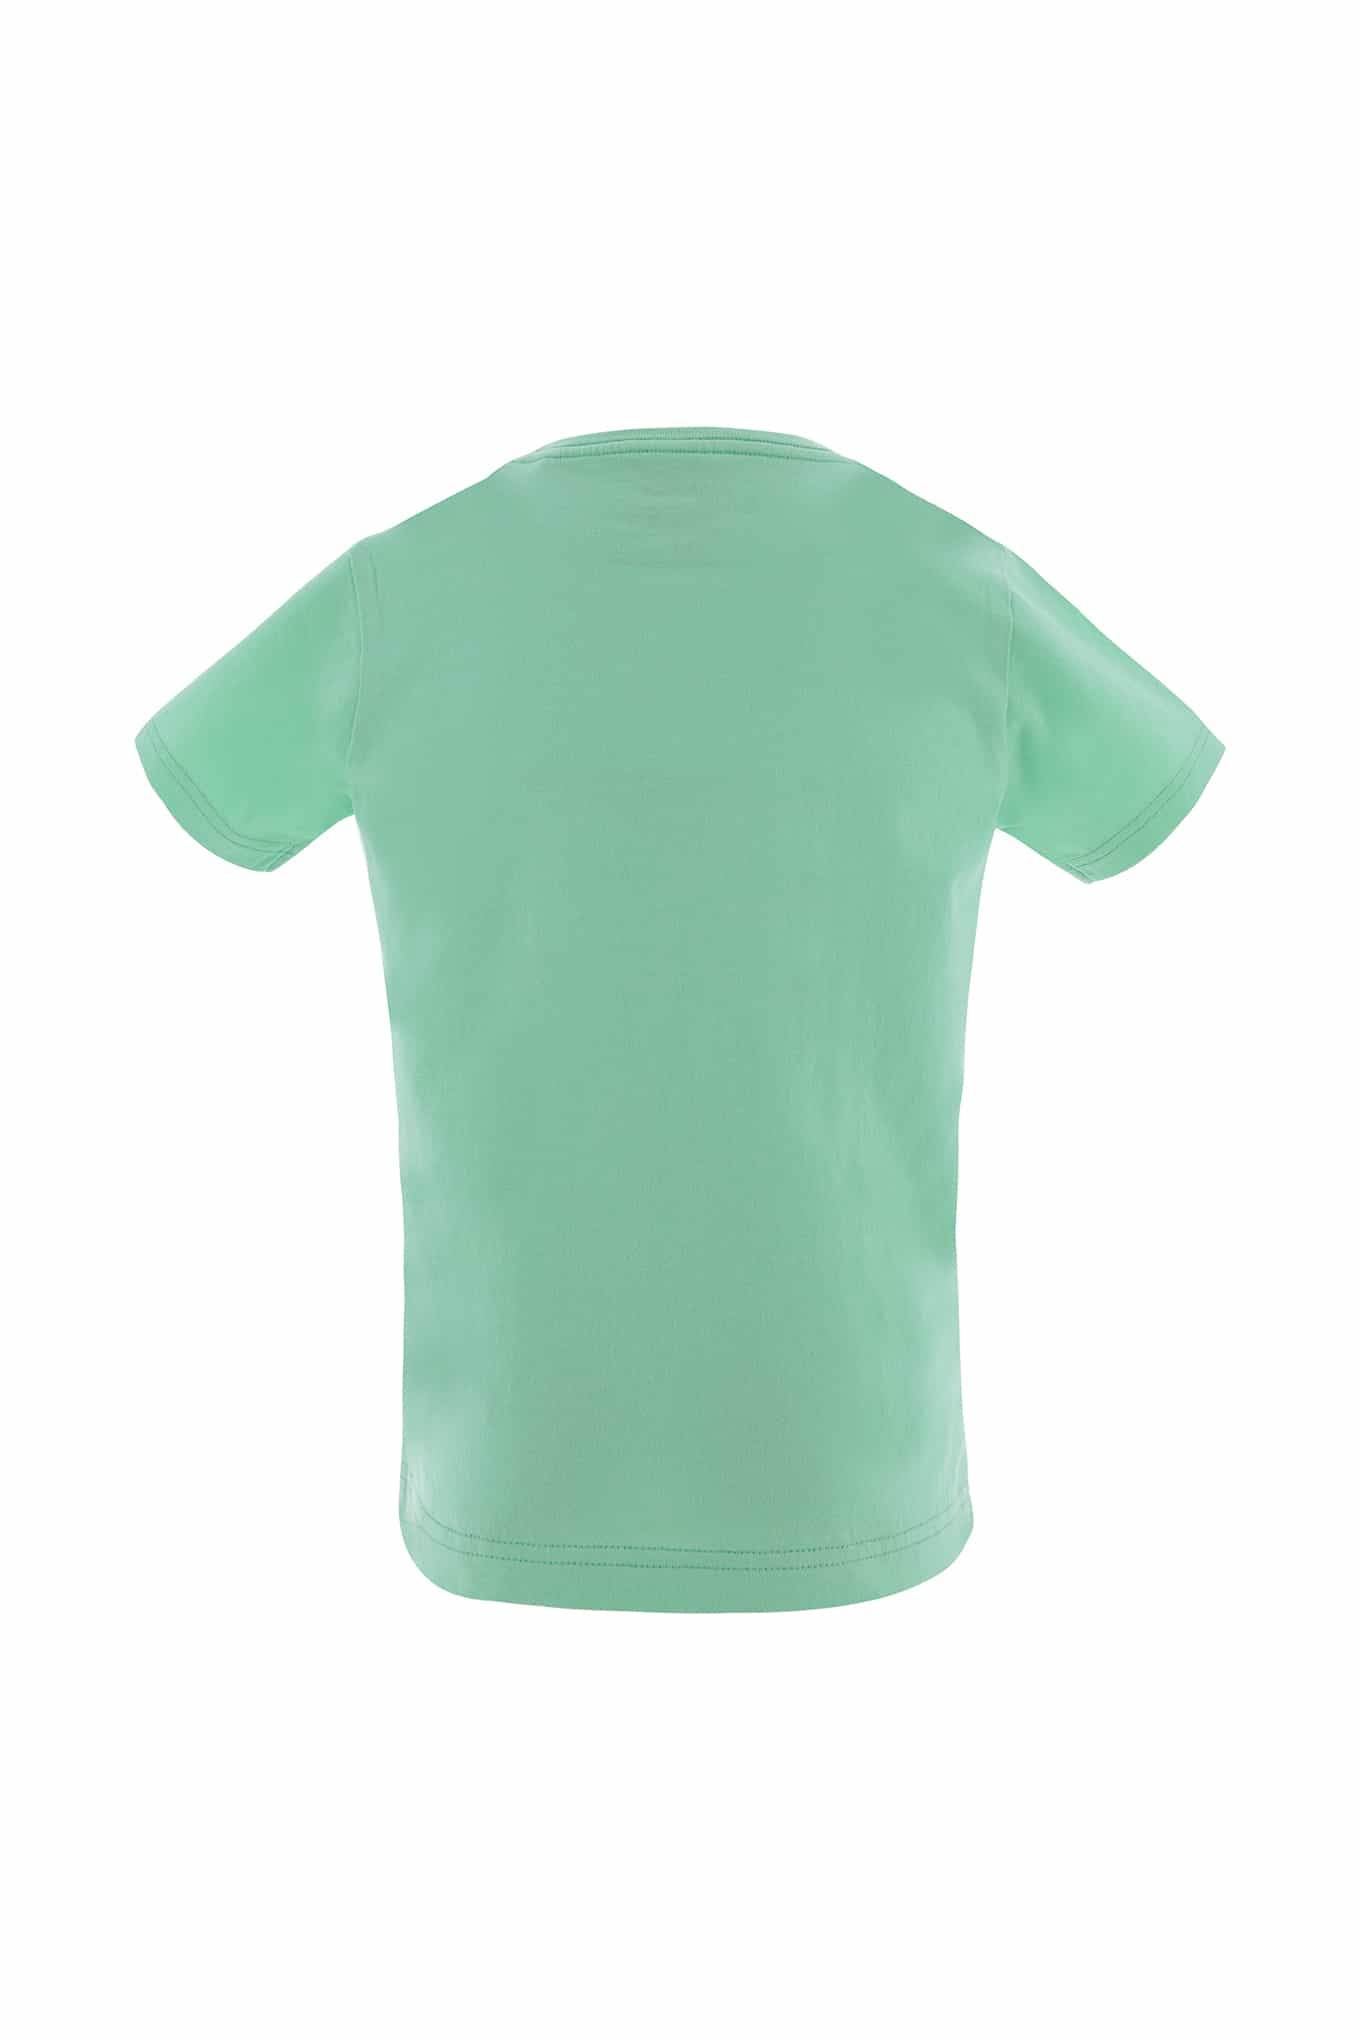 T-Shirt Mint Sport Boy